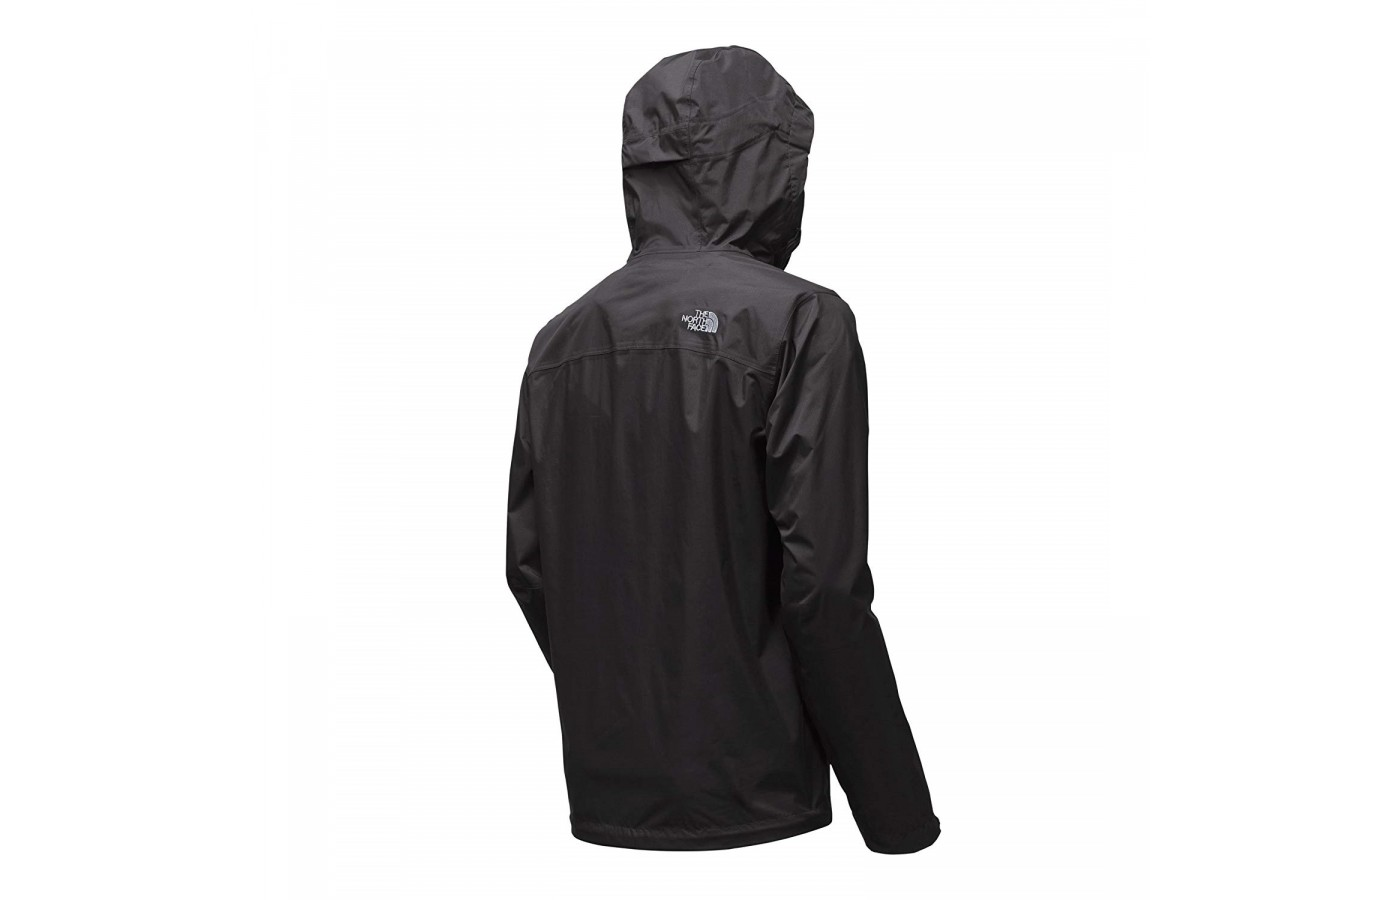 The North Face Venture 2 offers an adjustable hood for wind protection and warmth.